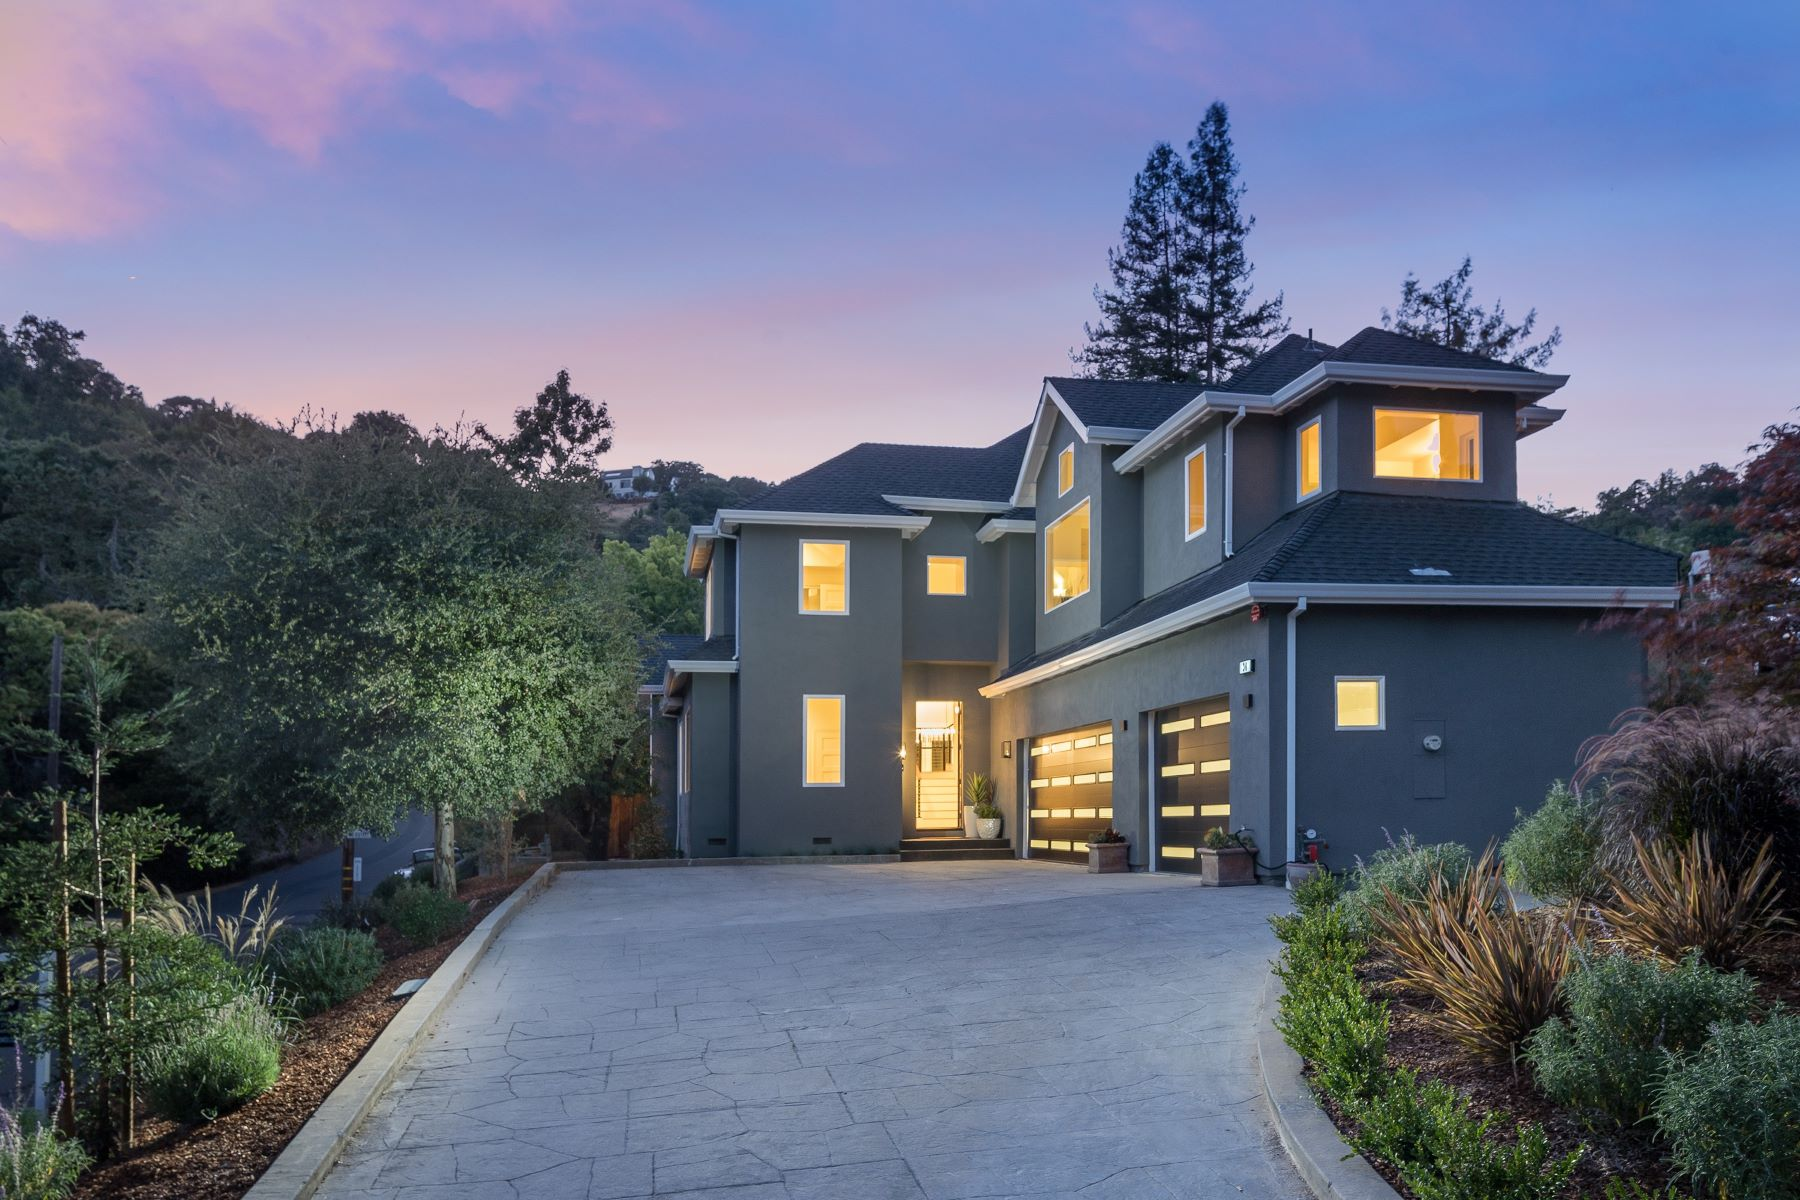 Single Family Homes for Sale at Stunning Sleepy Hollow Home 30 Oak Knoll Drive San Anselmo, California 94960 United States